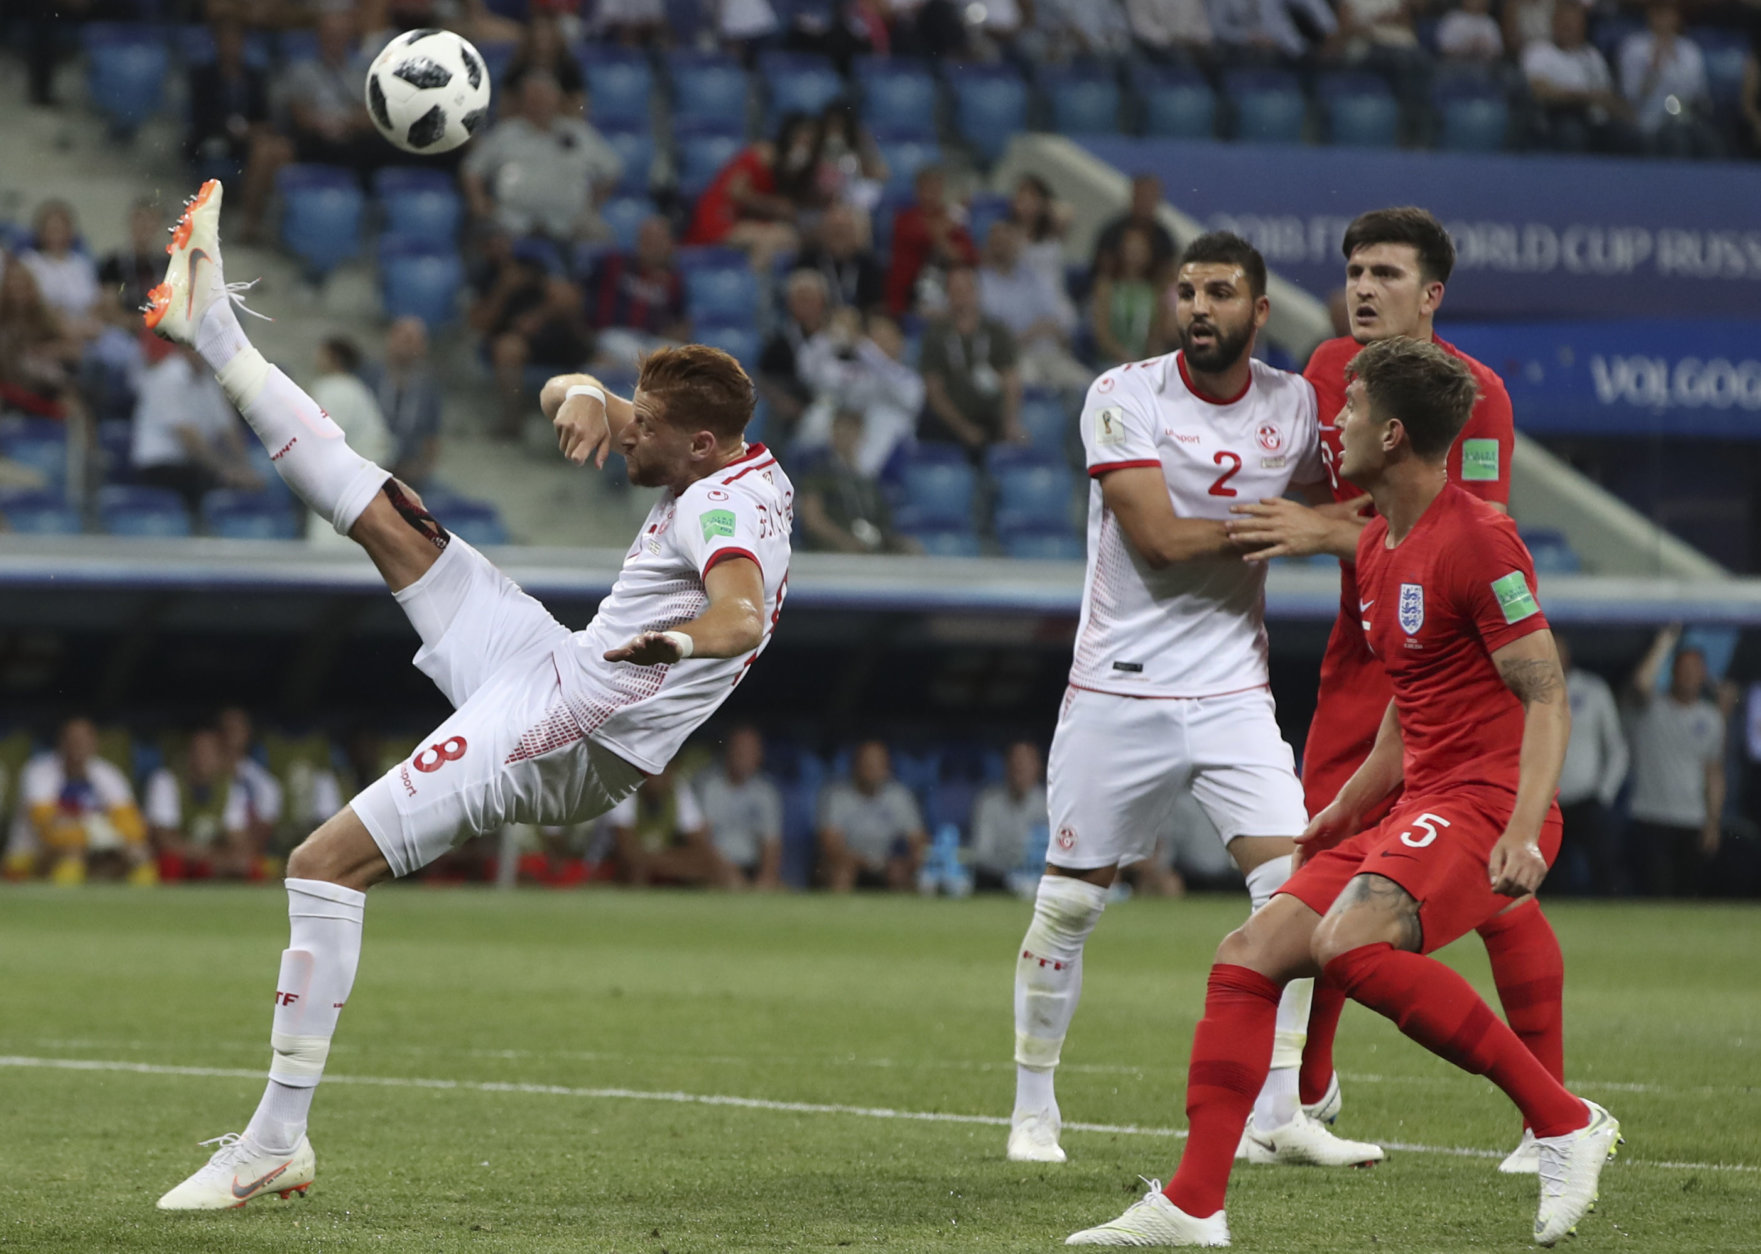 Tunisia's Fakhreddine Ben Youssef, left, kicks the ball during the group G match between Tunisia and England at the 2018 soccer World Cup in the Volgograd Arena in Volgograd, Russia, Monday, June 18, 2018. (AP Photo/Thanassis Stavrakis)